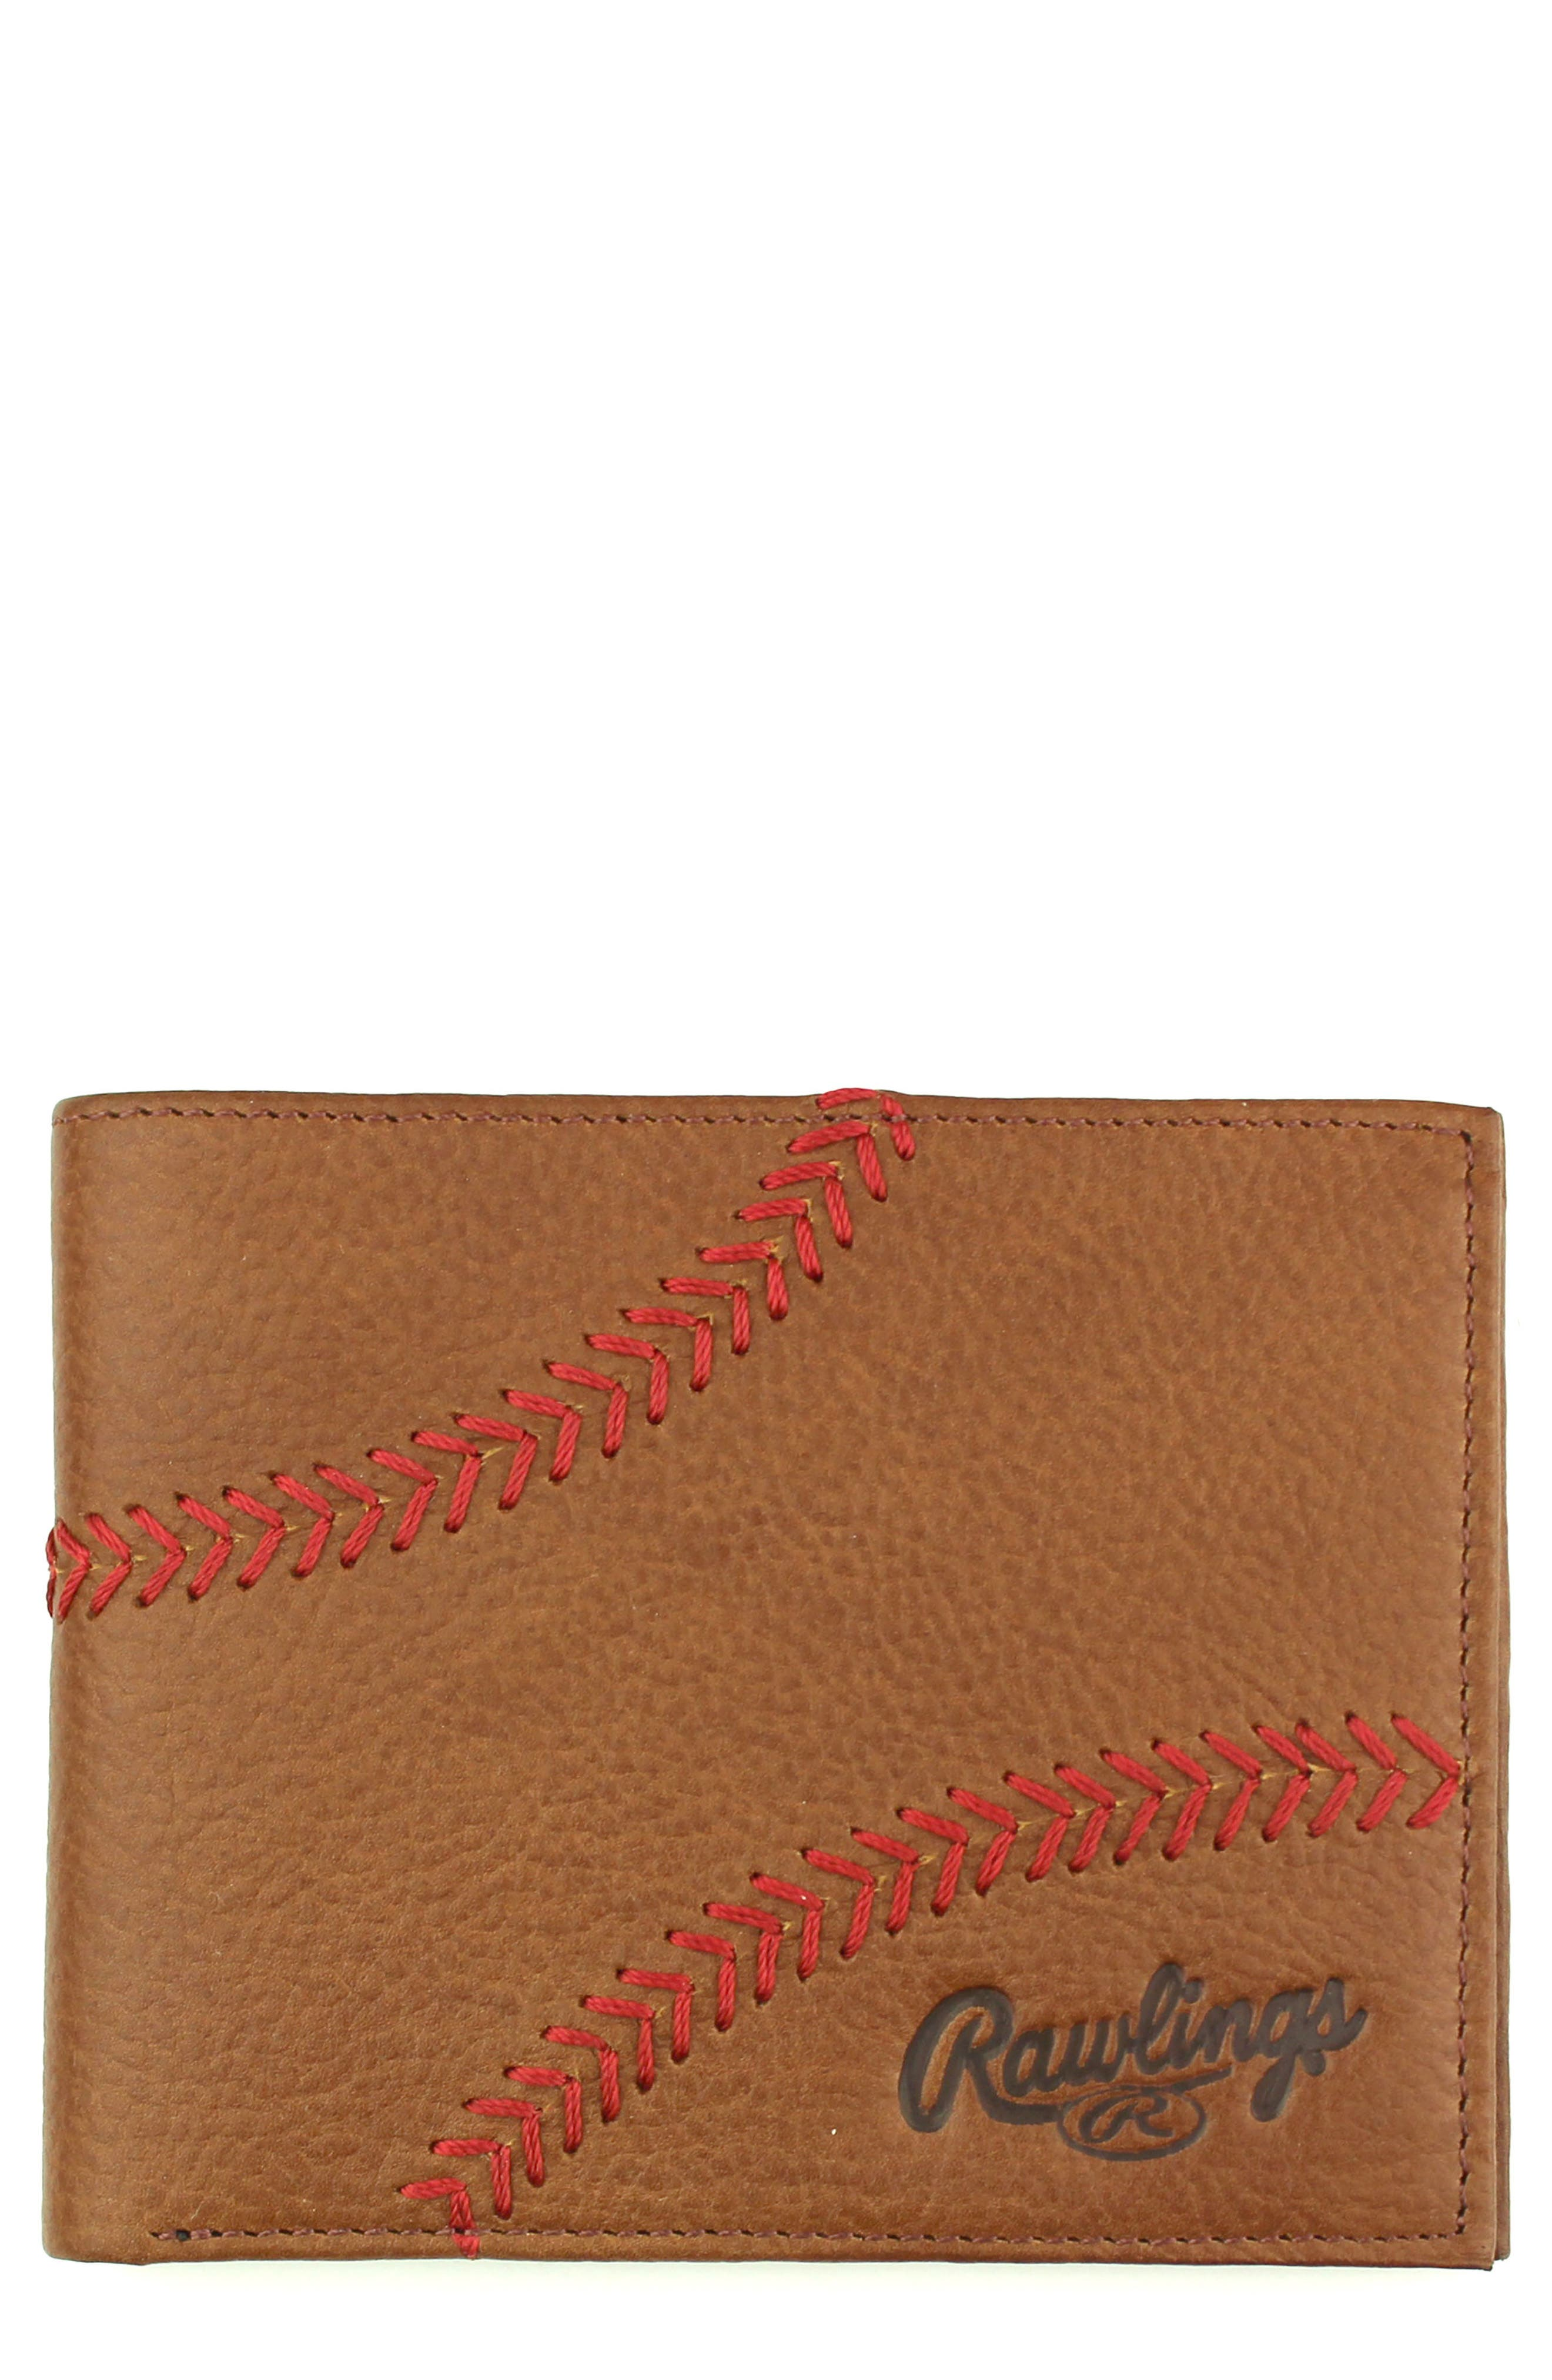 Home Run Bifold Leather Wallet,                             Main thumbnail 1, color,                             202